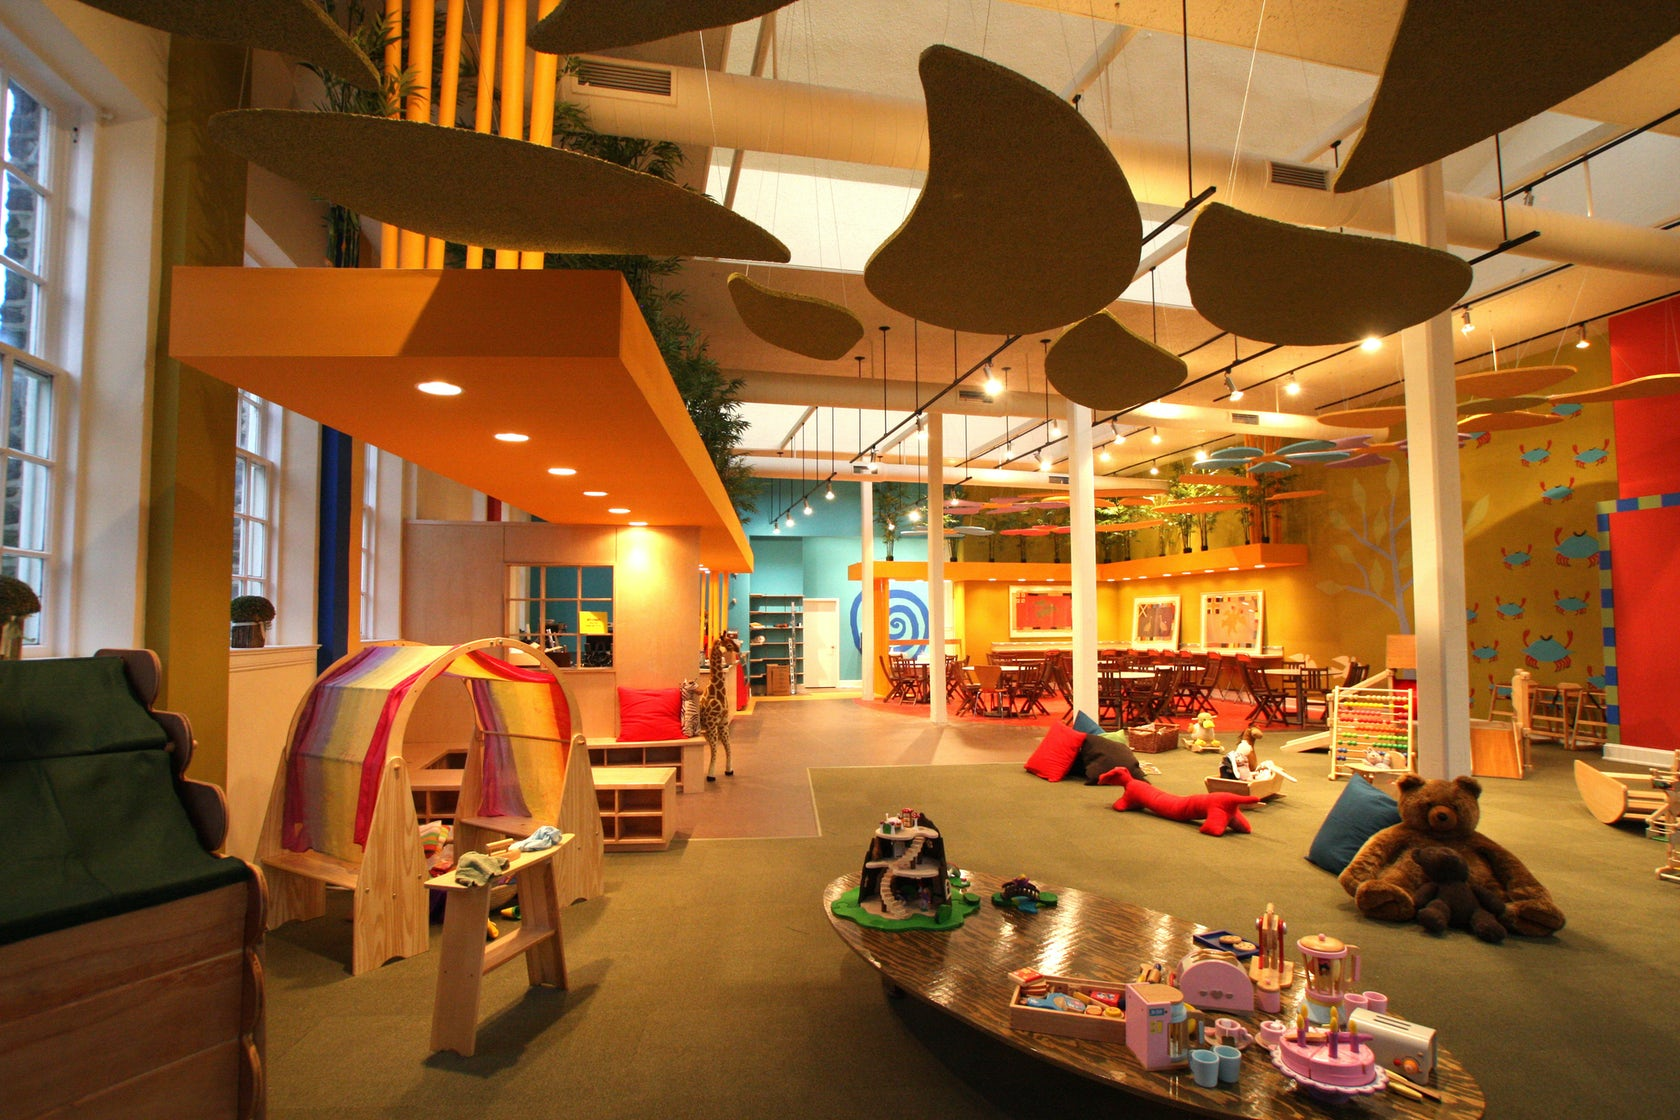 The little treehouse play cafe architizer - Interior design jobs philadelphia ...